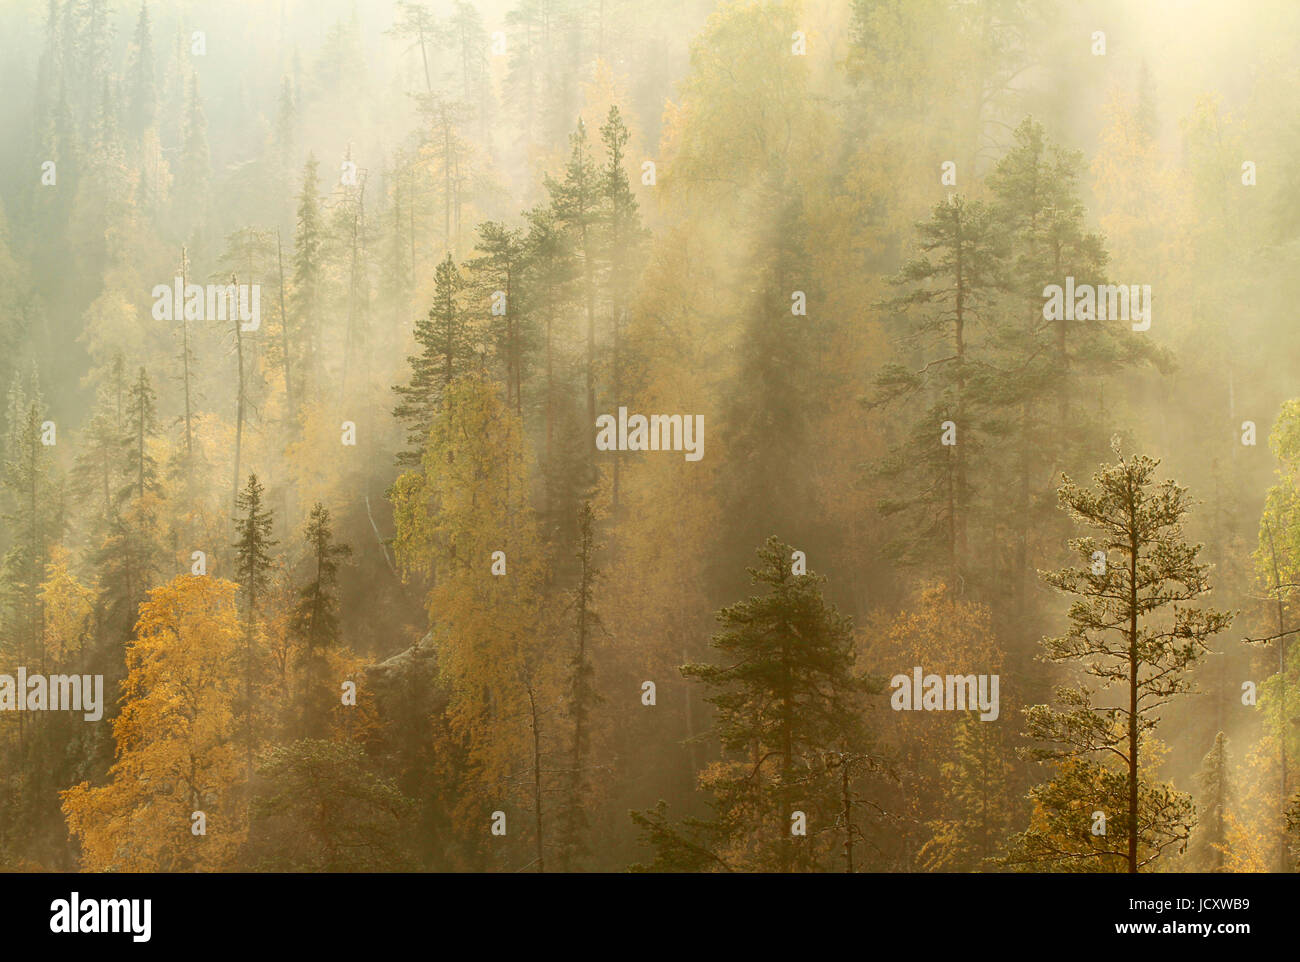 Autumn morning mist rolling over taiga forest in Oulanka national park, Kuusamo, Finland. - Stock Image